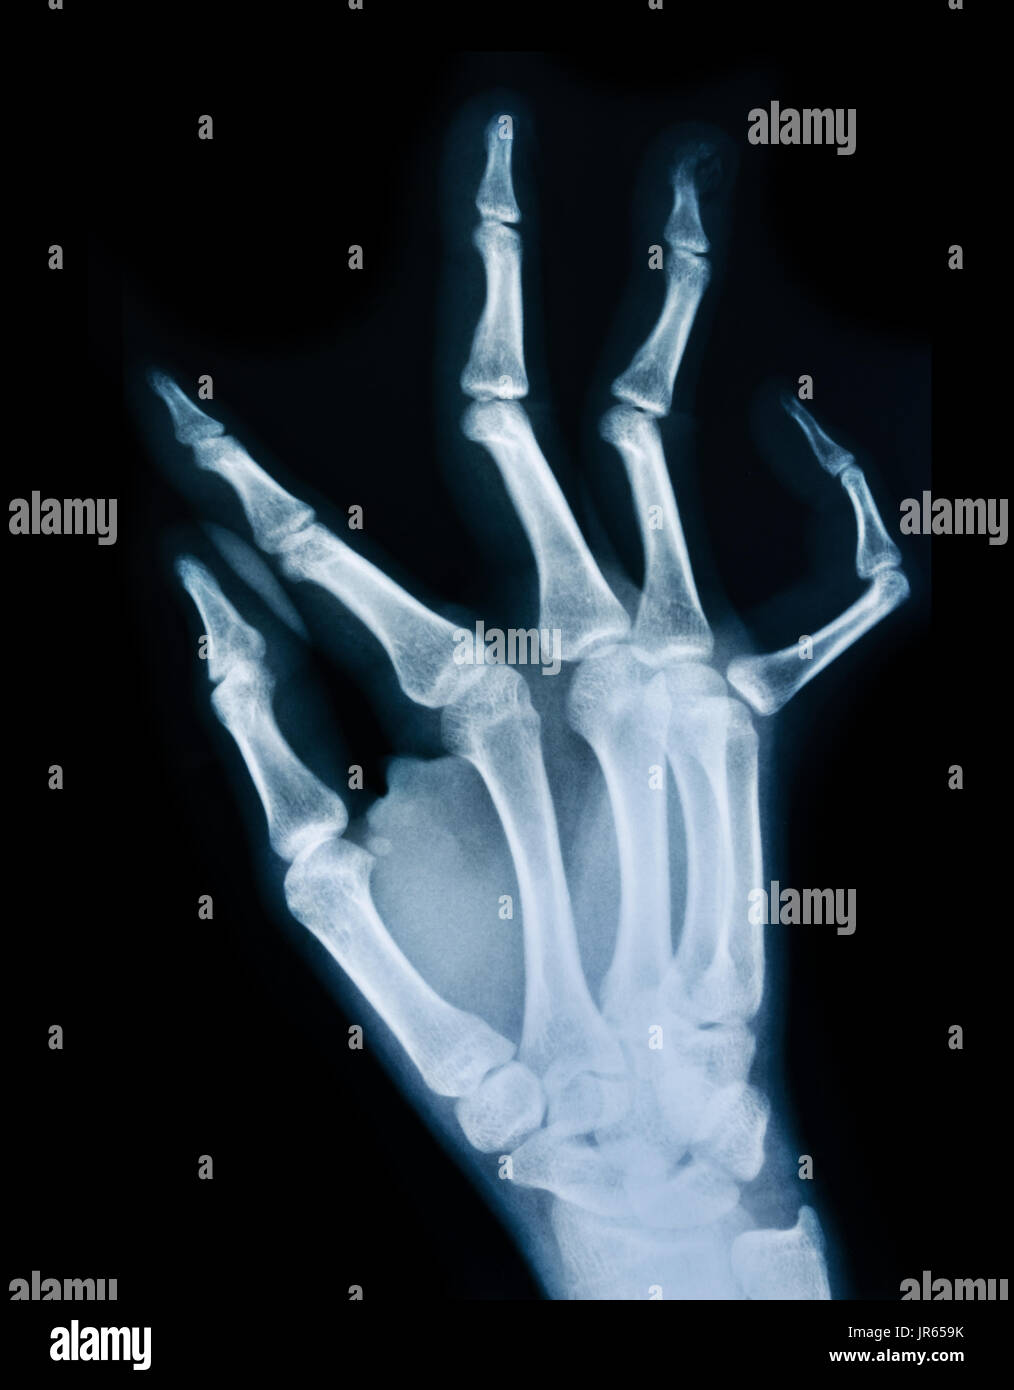 Lateral hand x ray anatomy